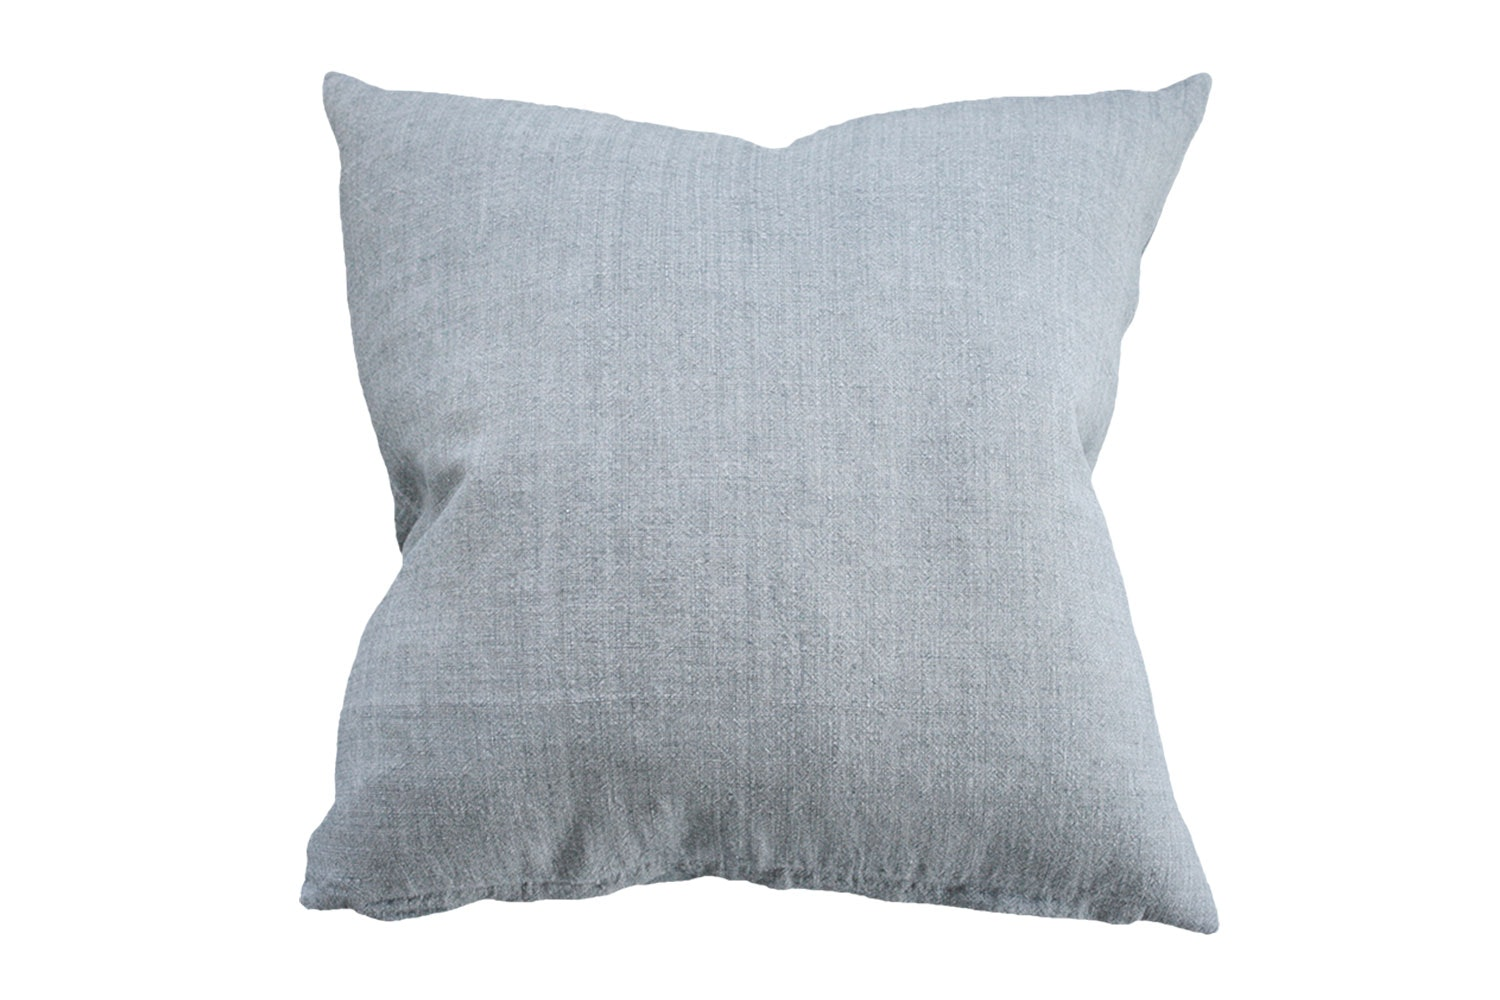 Indira Cushions by Mulberi - Concrete